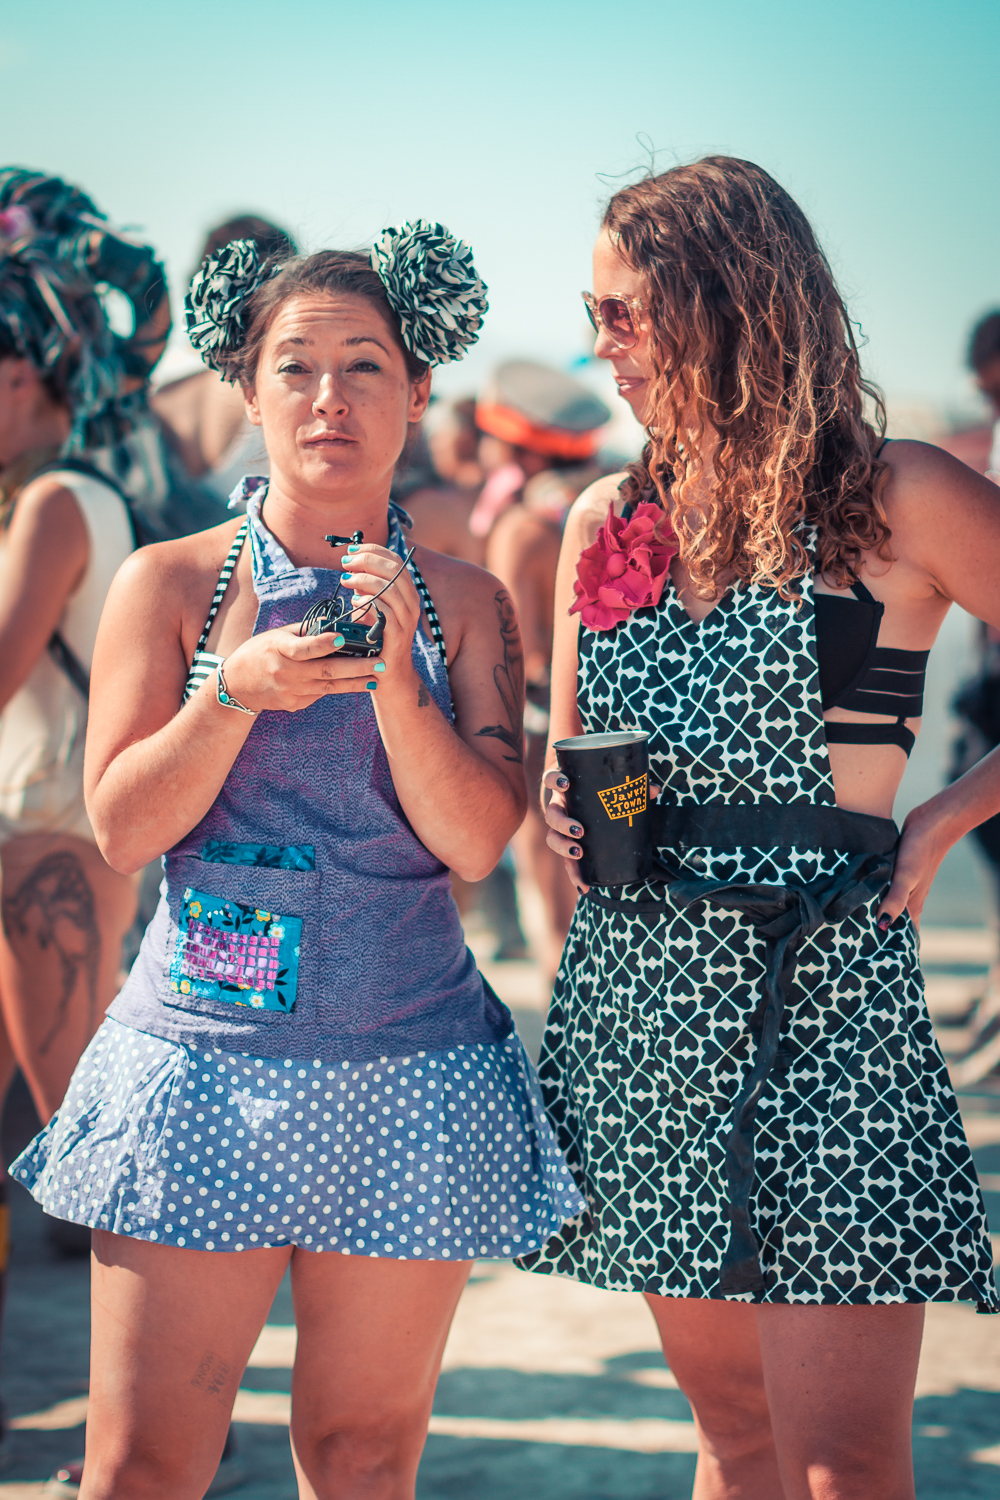 20160830-Burning man-238.jpg